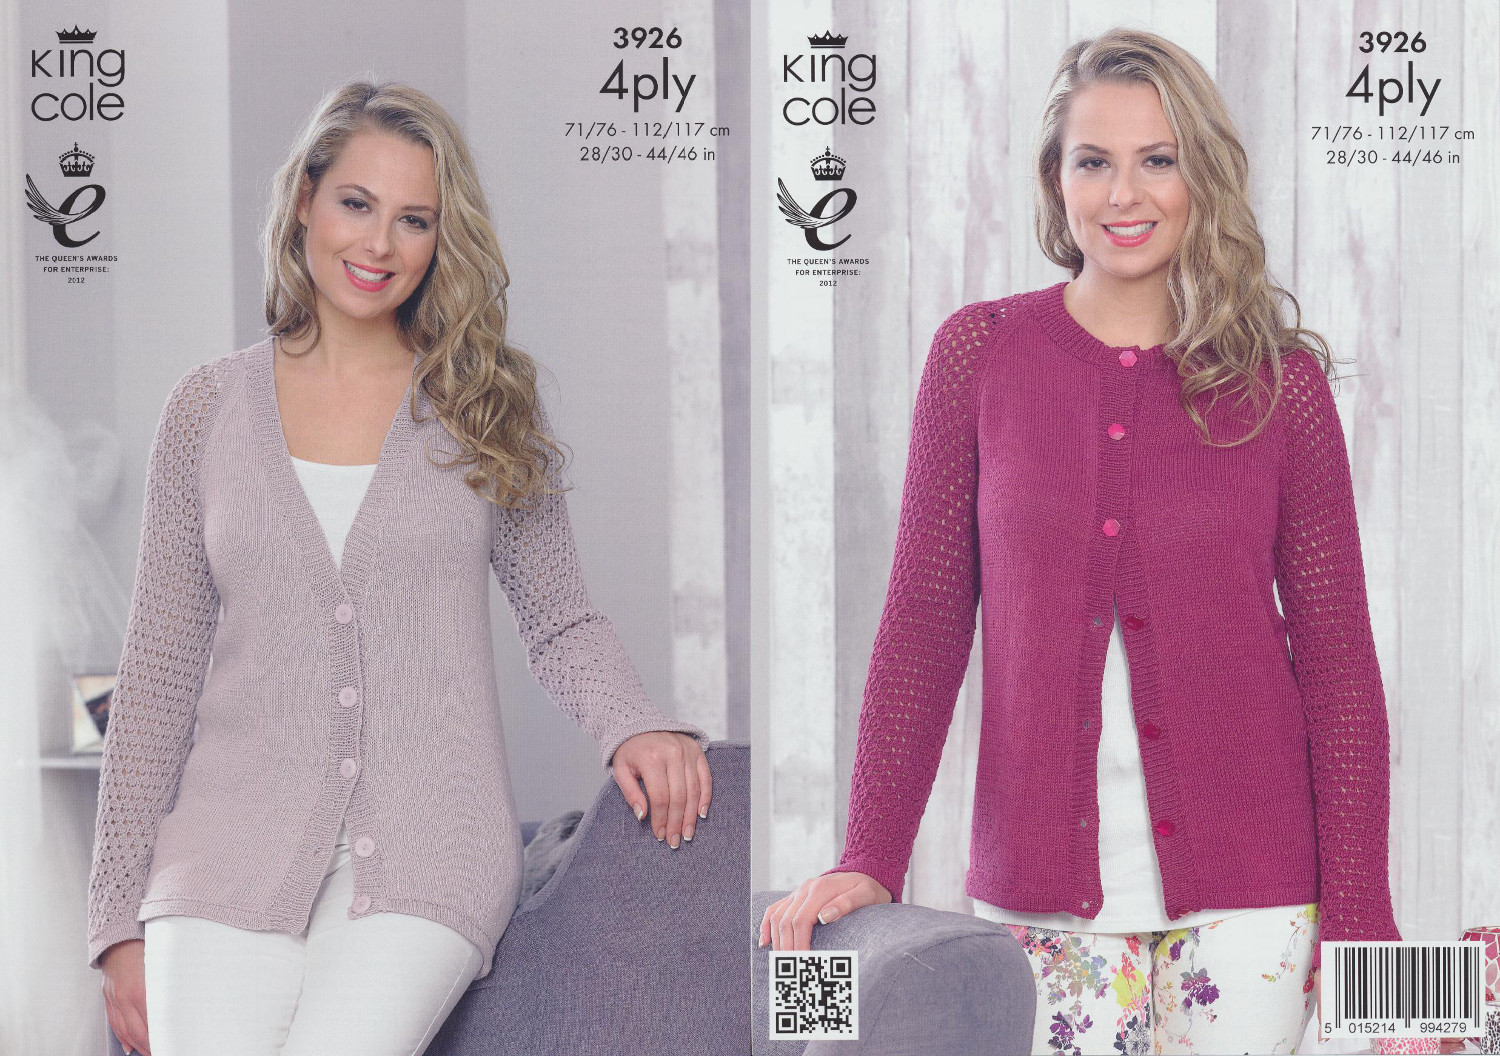 4 Ply Knitting Patterns Free Ladies : Ladies 4PLY Knitting Pattern King Cole Womens Knit Long Sleeved Cardigans 392...